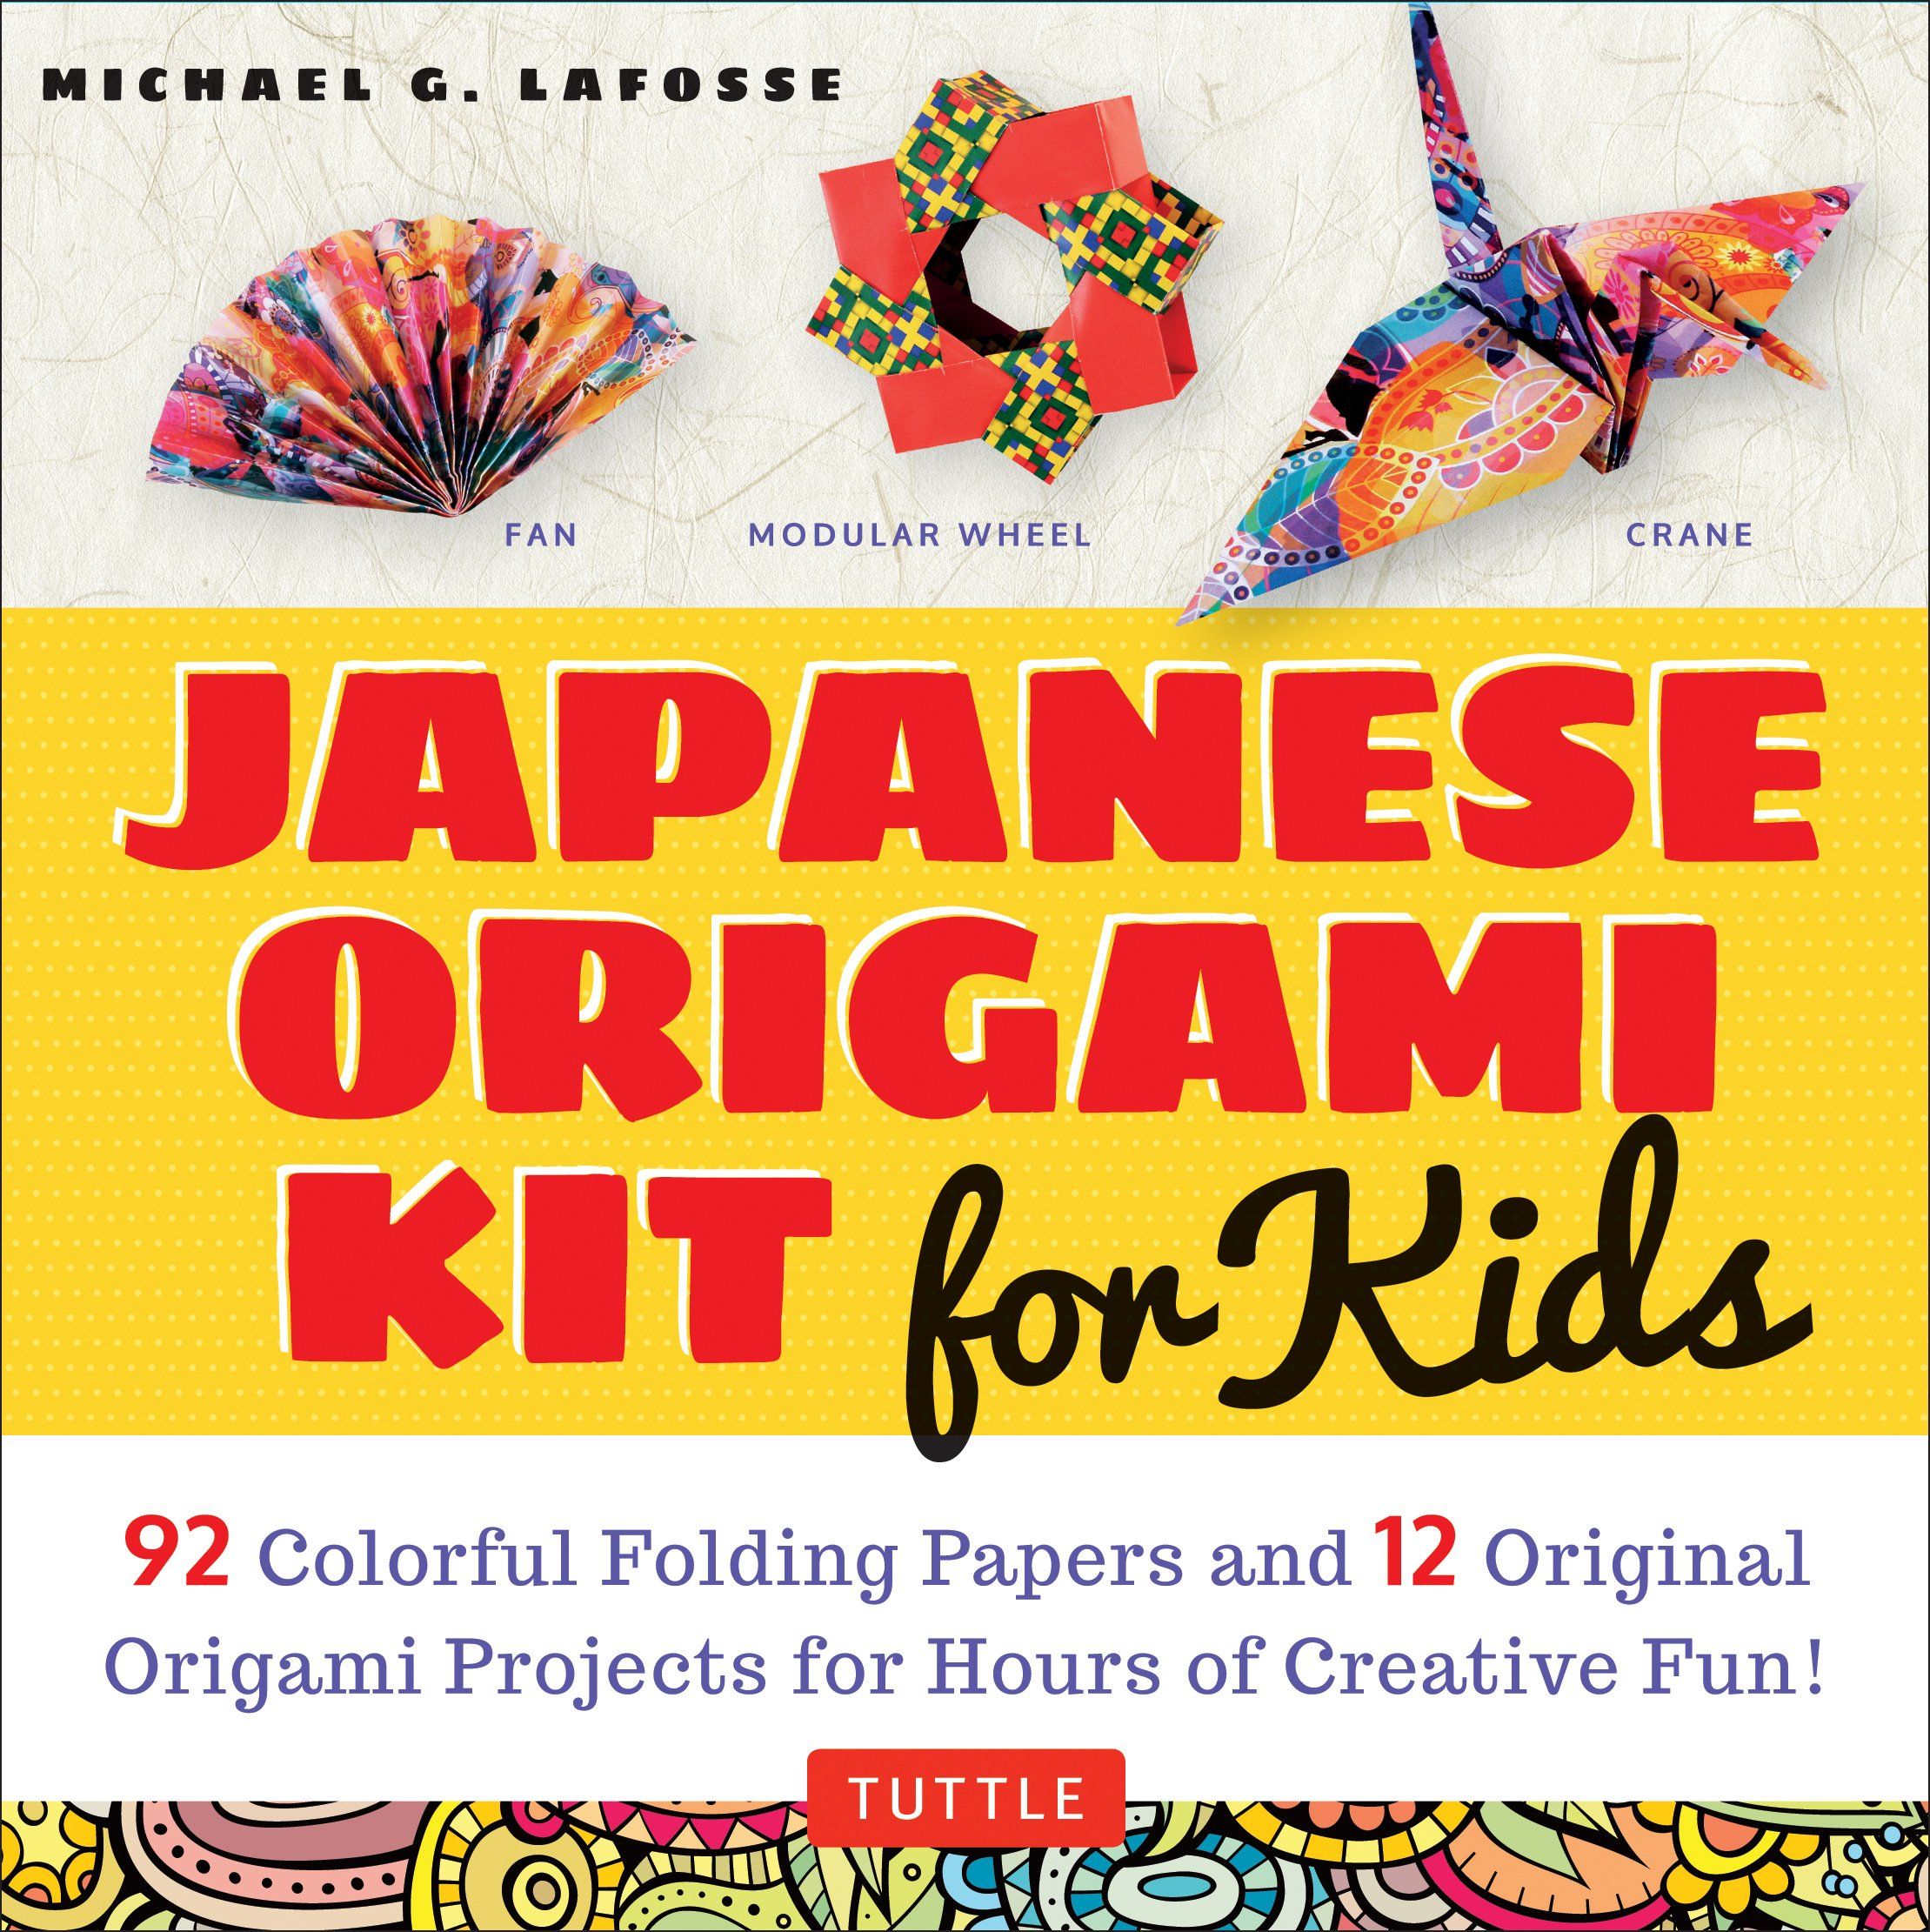 Japanese Origami Kit For Kids 92 Colorful Folding Carorigami Car Diagramcar Origamiorigami Diagramsmoney Papers And 12 Original Projects Hours Of Creative Fun